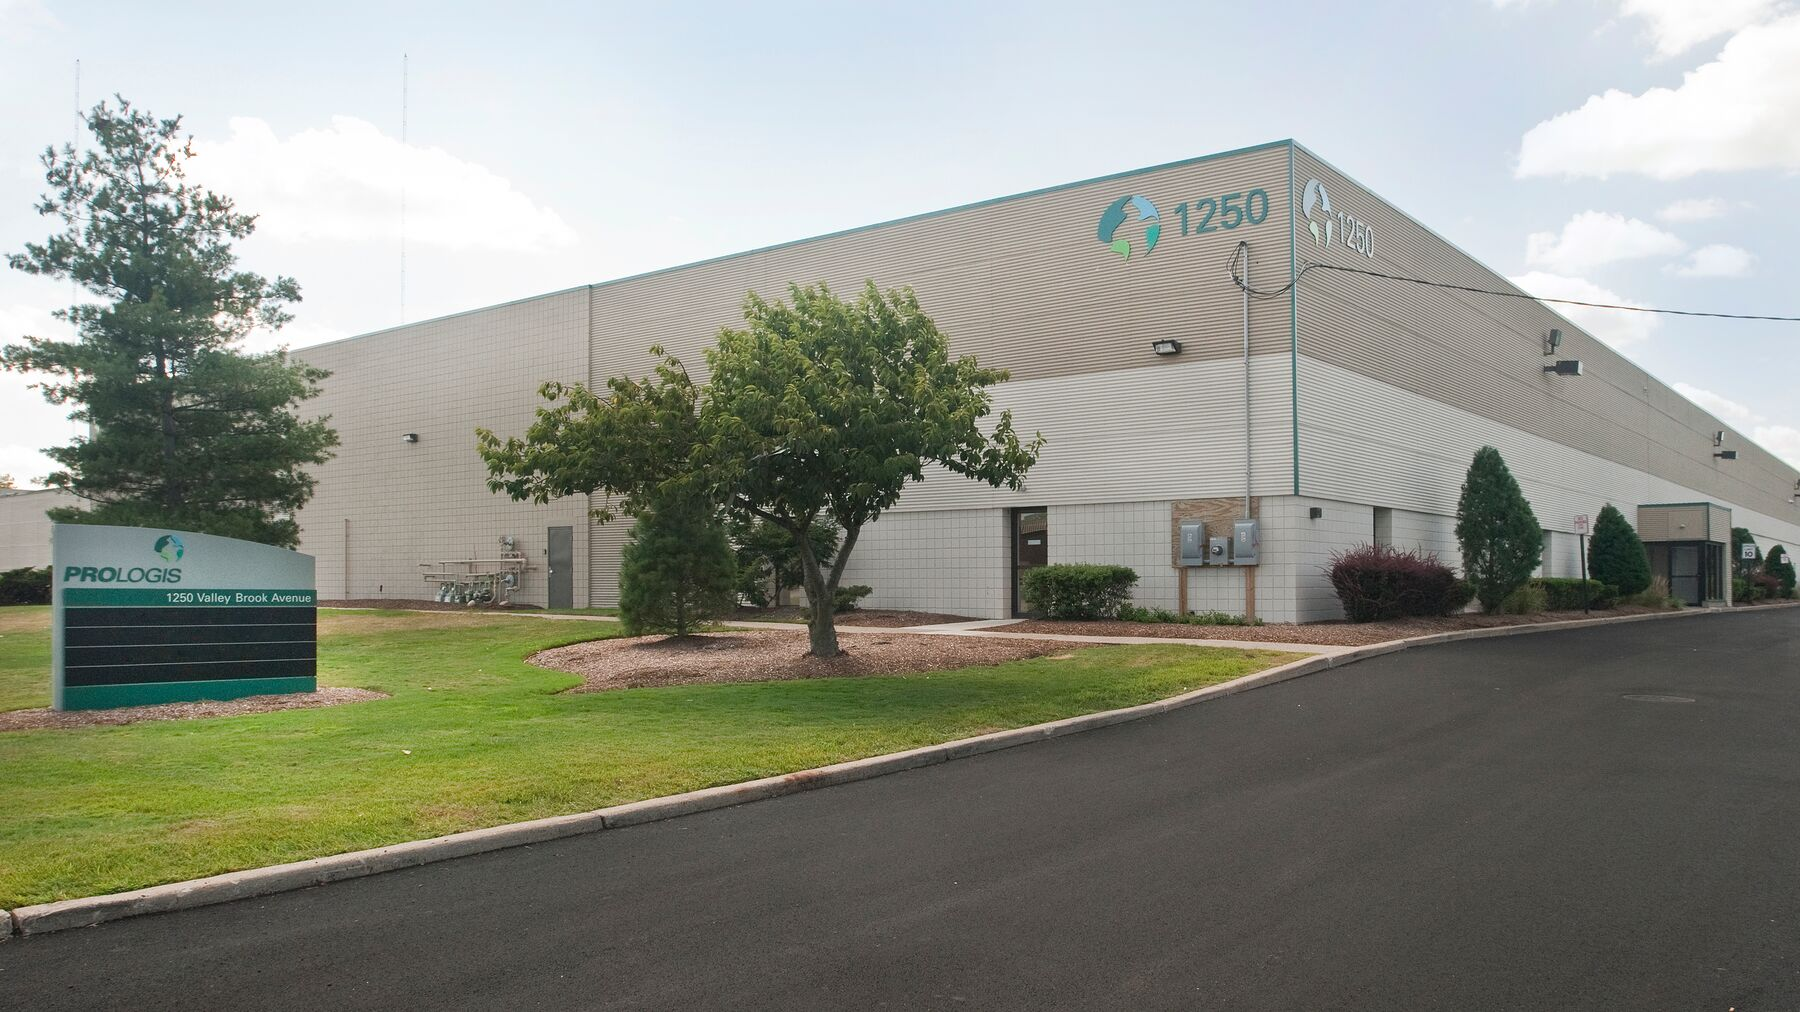 DPM-Prologis-Meadowlands_1250-Valley-Brook-Ave.jpg